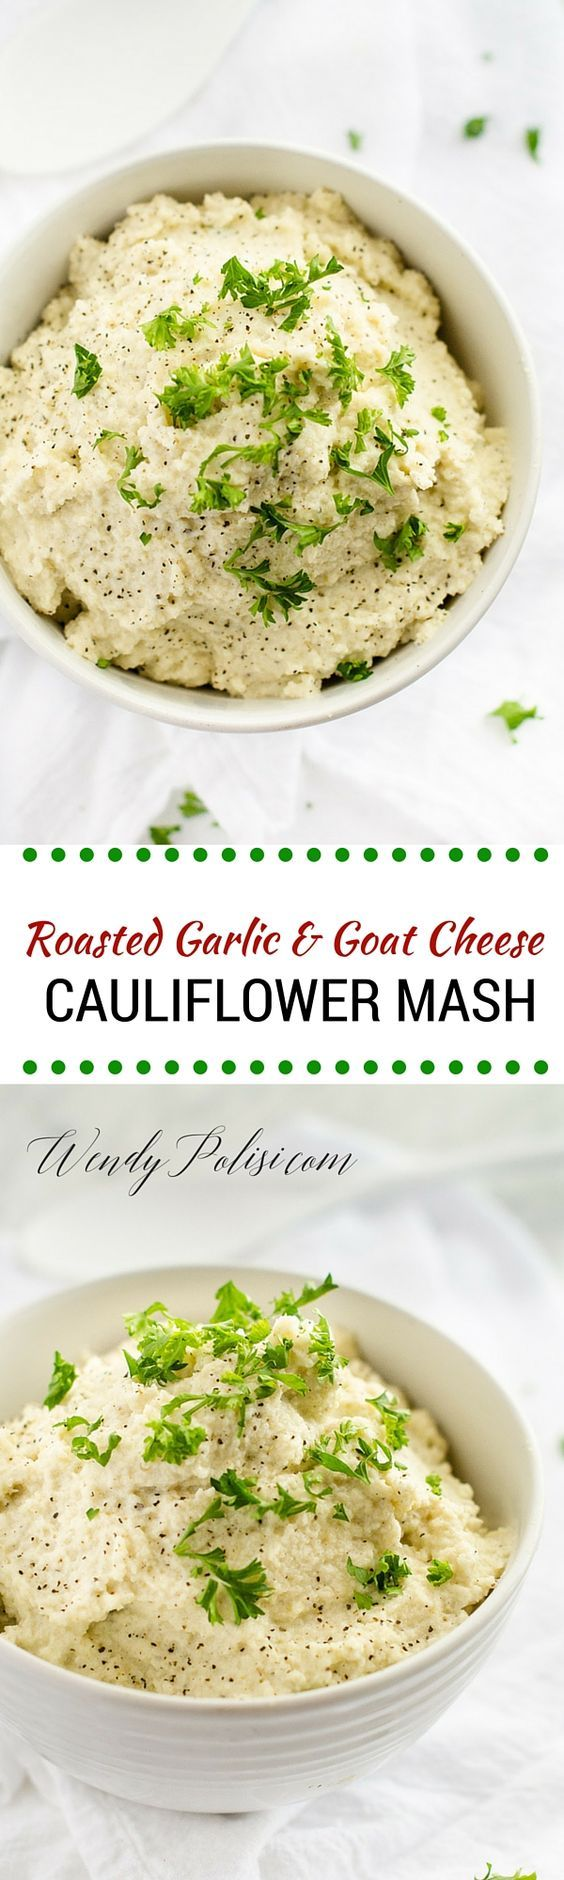 & Goat Cheese Cauliflower Mash - This Roasted Garlic and Goat Cheese ...